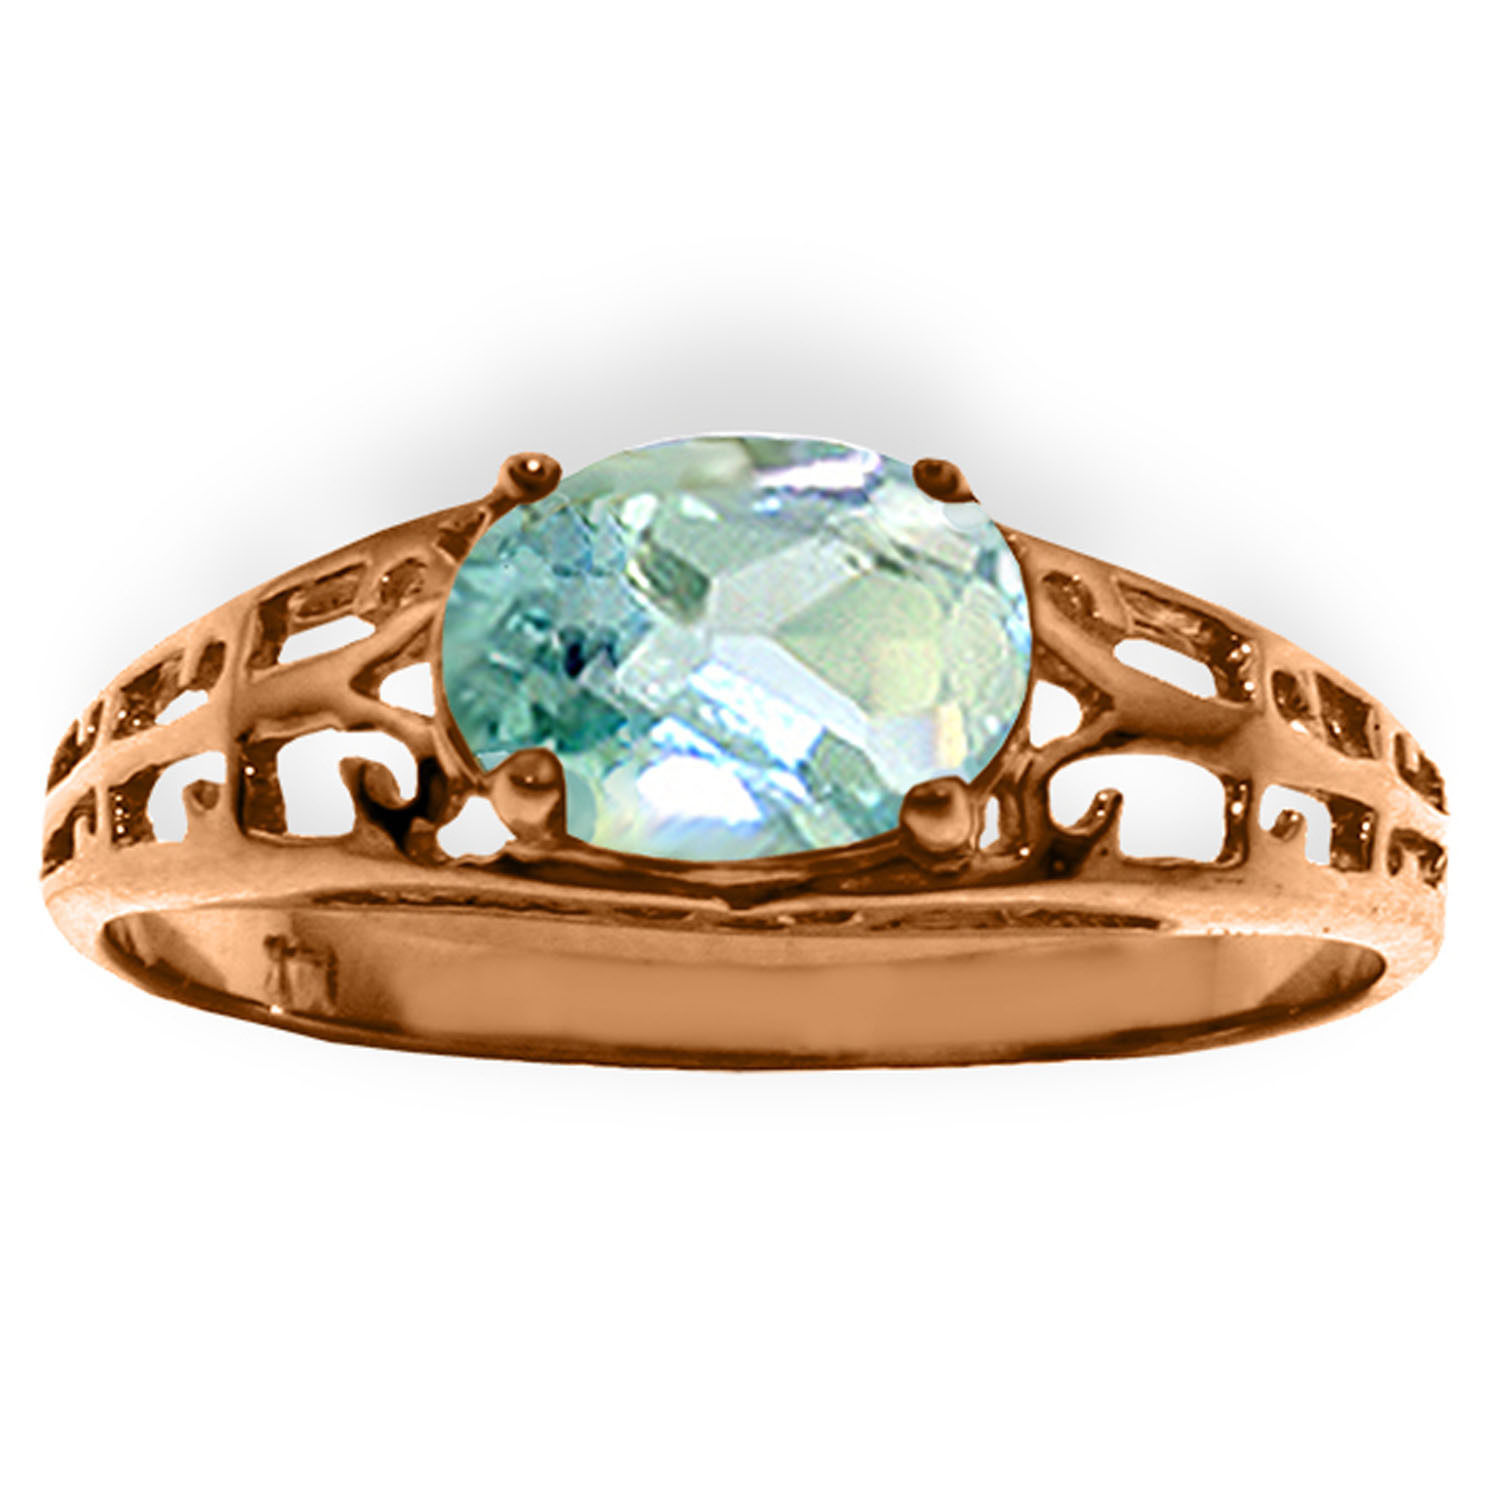 Brand New 14K Solid Rose Gold Filigree Ring with Natural Aquamarine